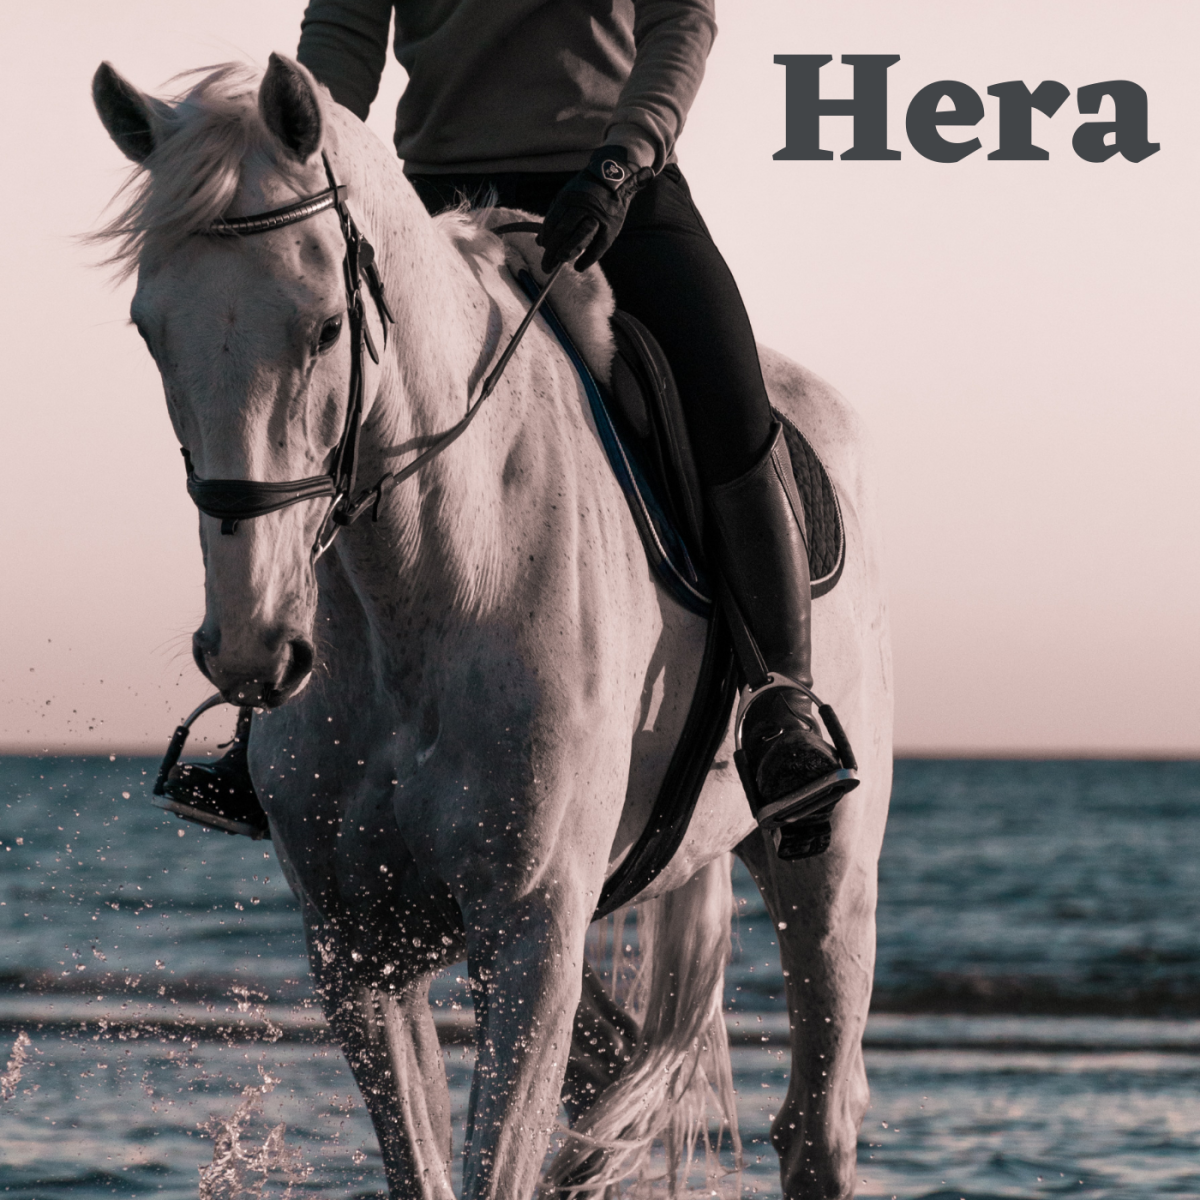 Hera would make a fine name for a particularly regal horse.